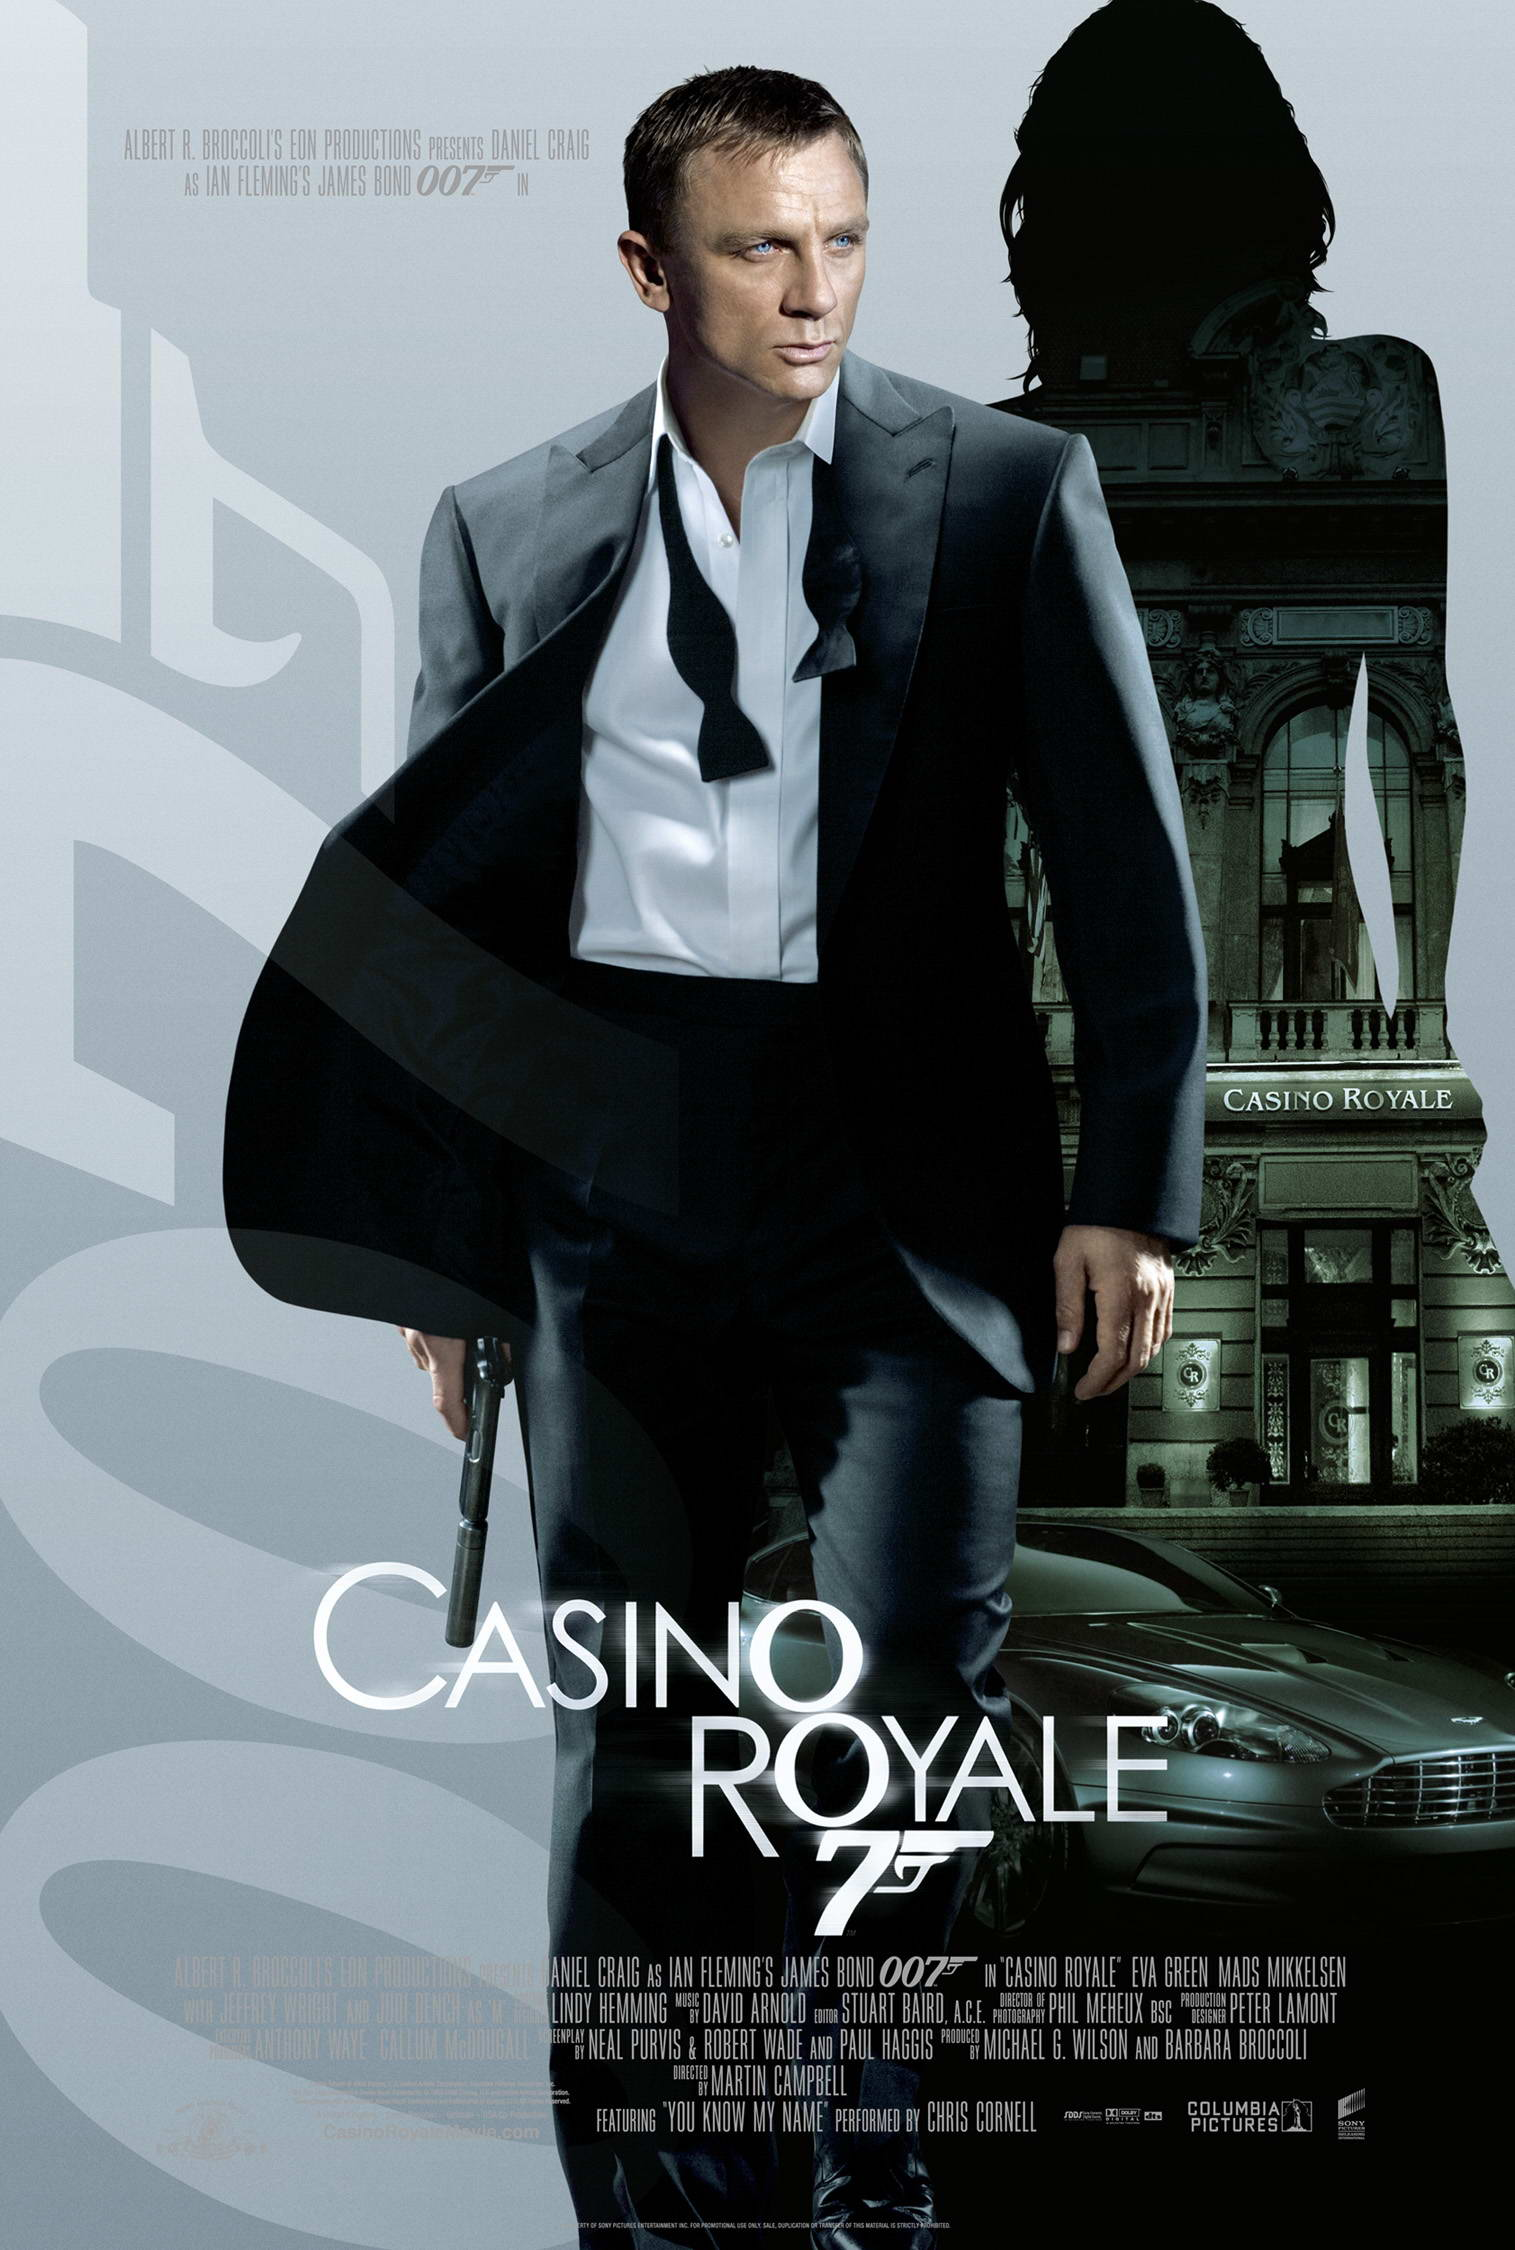 Casino royale 2006 subtitles free download free casinos for fun